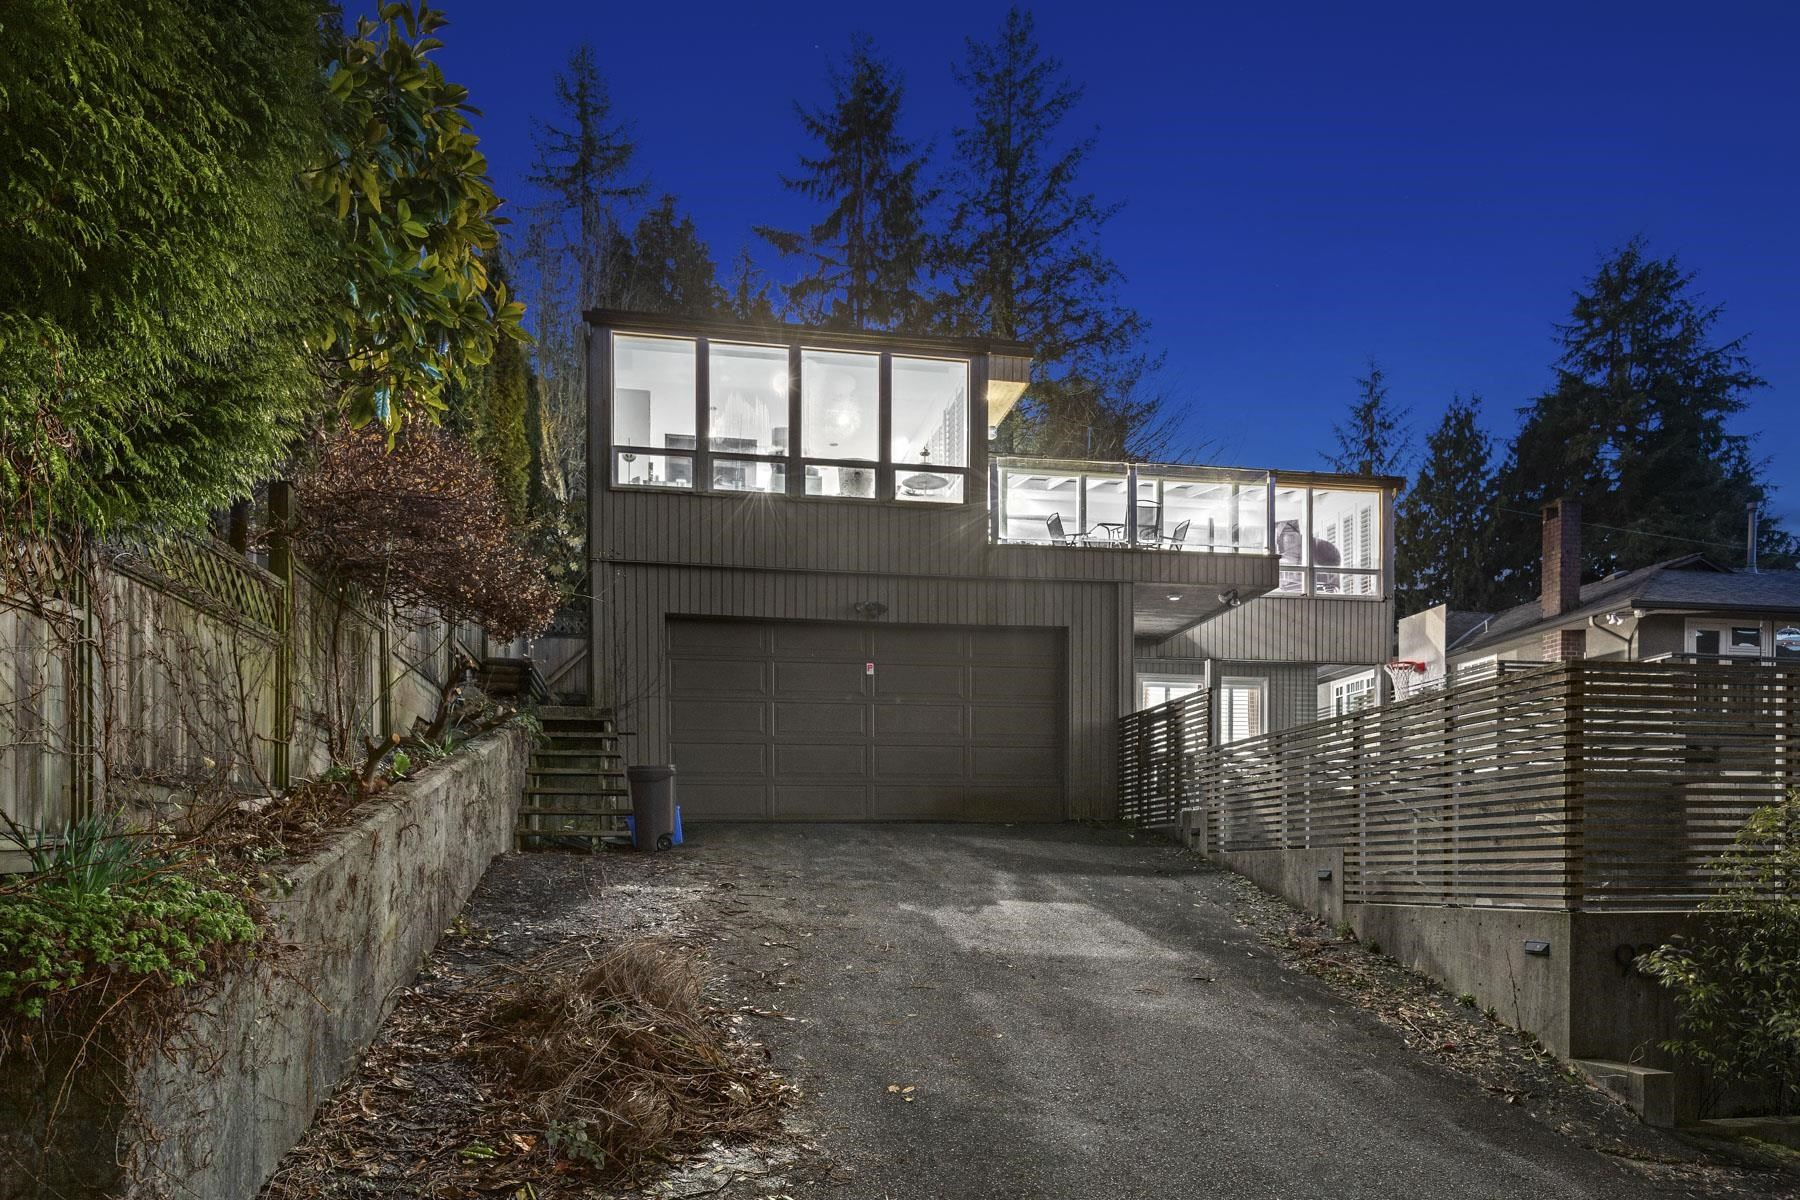 Photo of 925 INGLEWOOD AVENUE, West Vancouver, BC V7T 1X8 (MLS # R2619747)